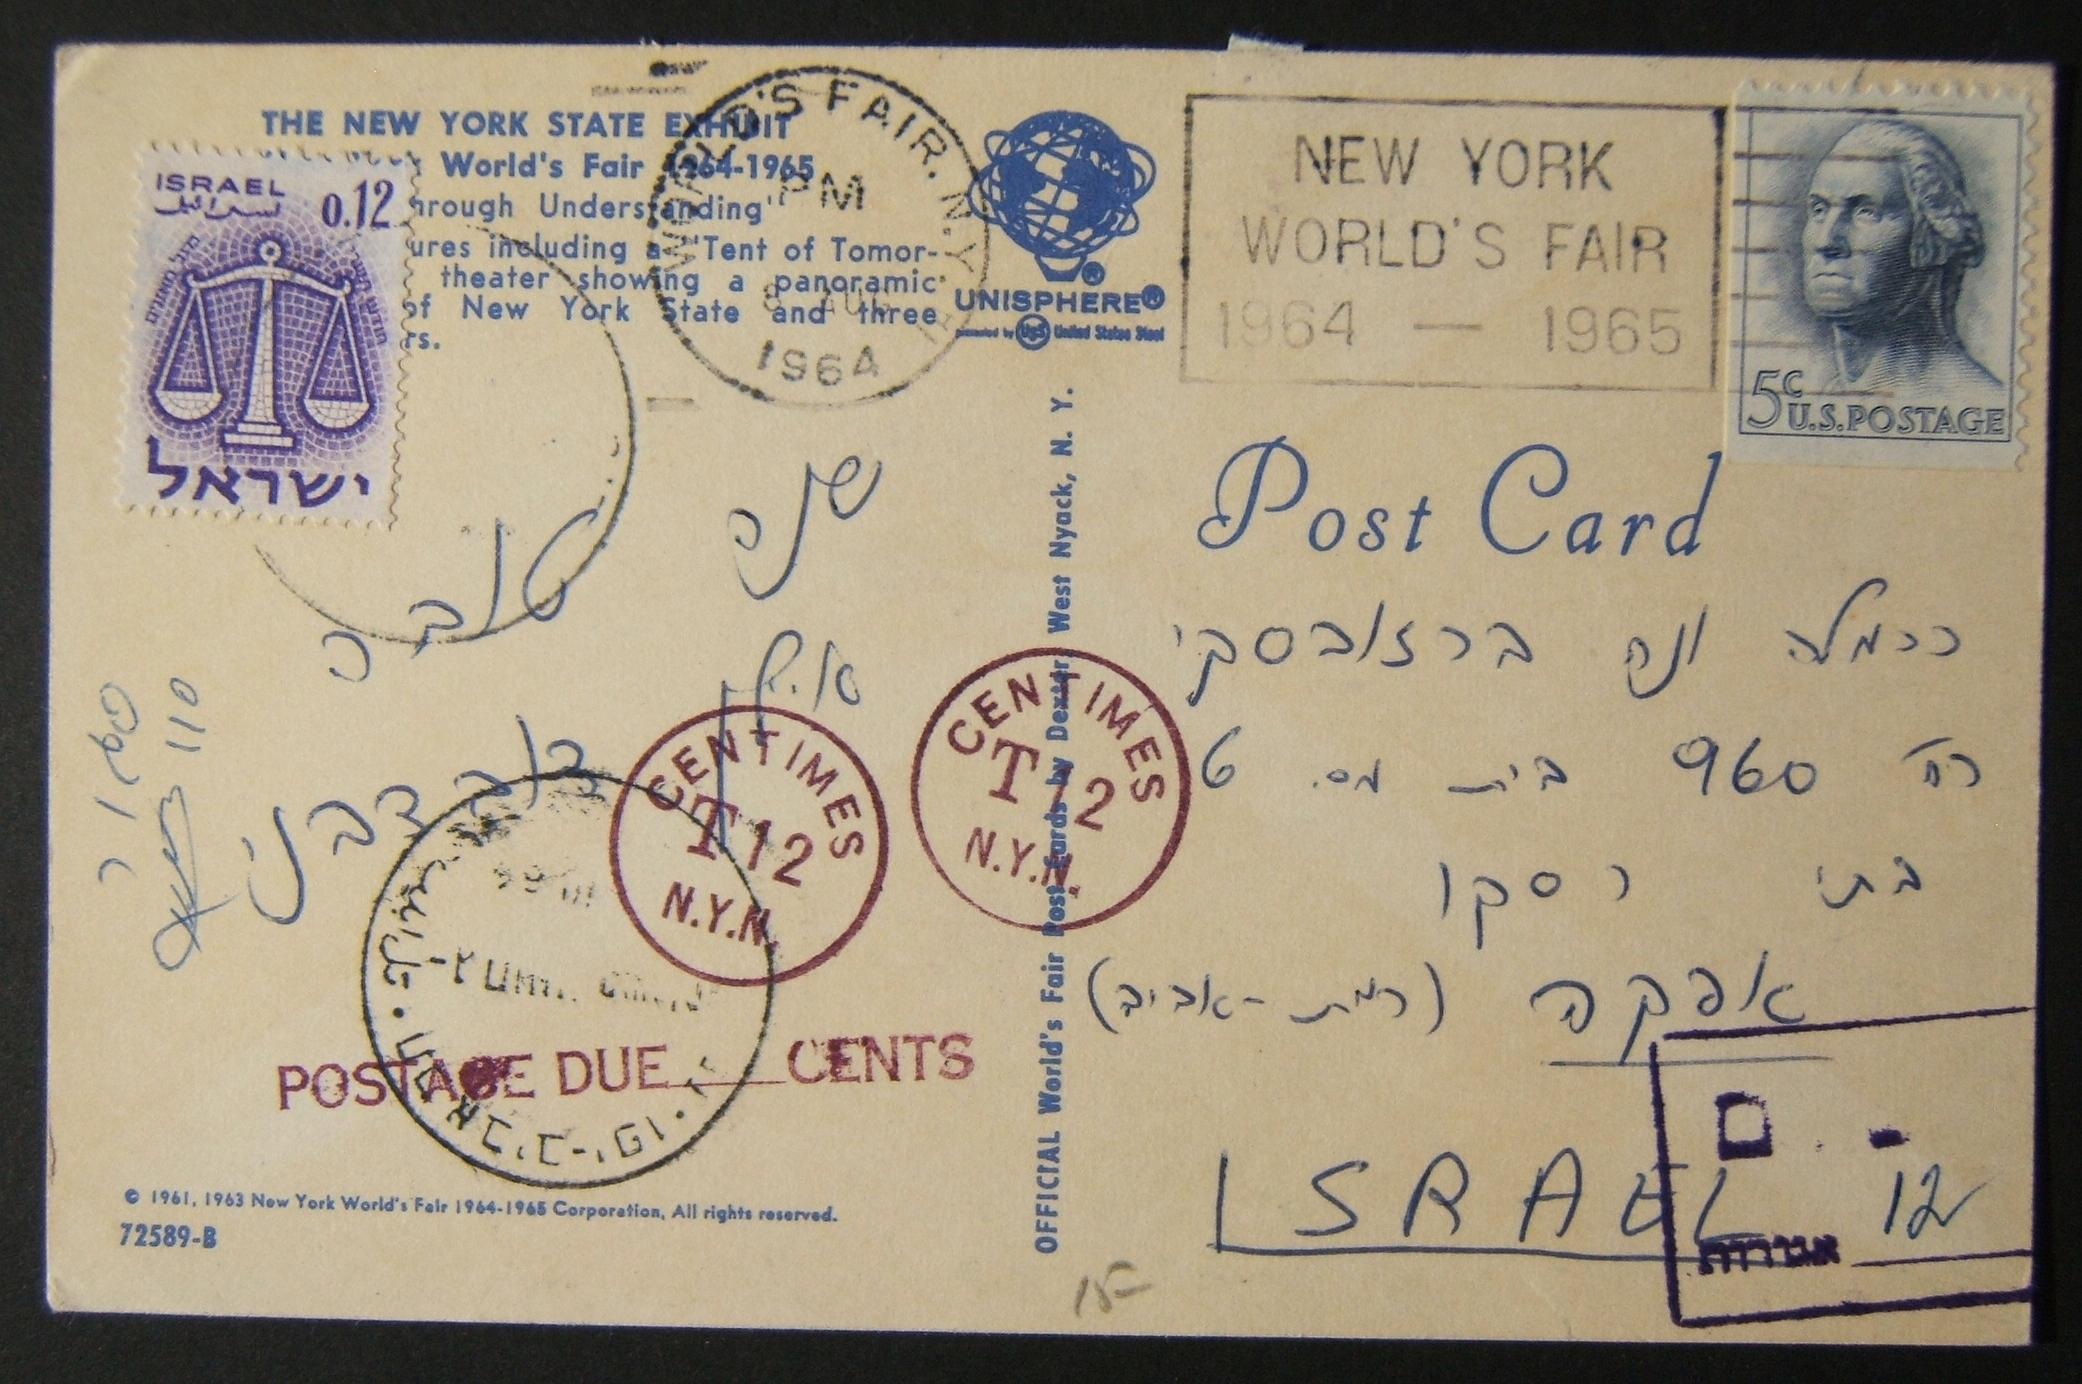 1964 incoming US taxed mail: 8 AUG 1964 surface mailed ppc NY World Fair ex WORLD'S FAIR, NY to AFEKA underfranked at $0.05 and taxed 0.12L in Israel, paid using 1961 Zodiac Ba210